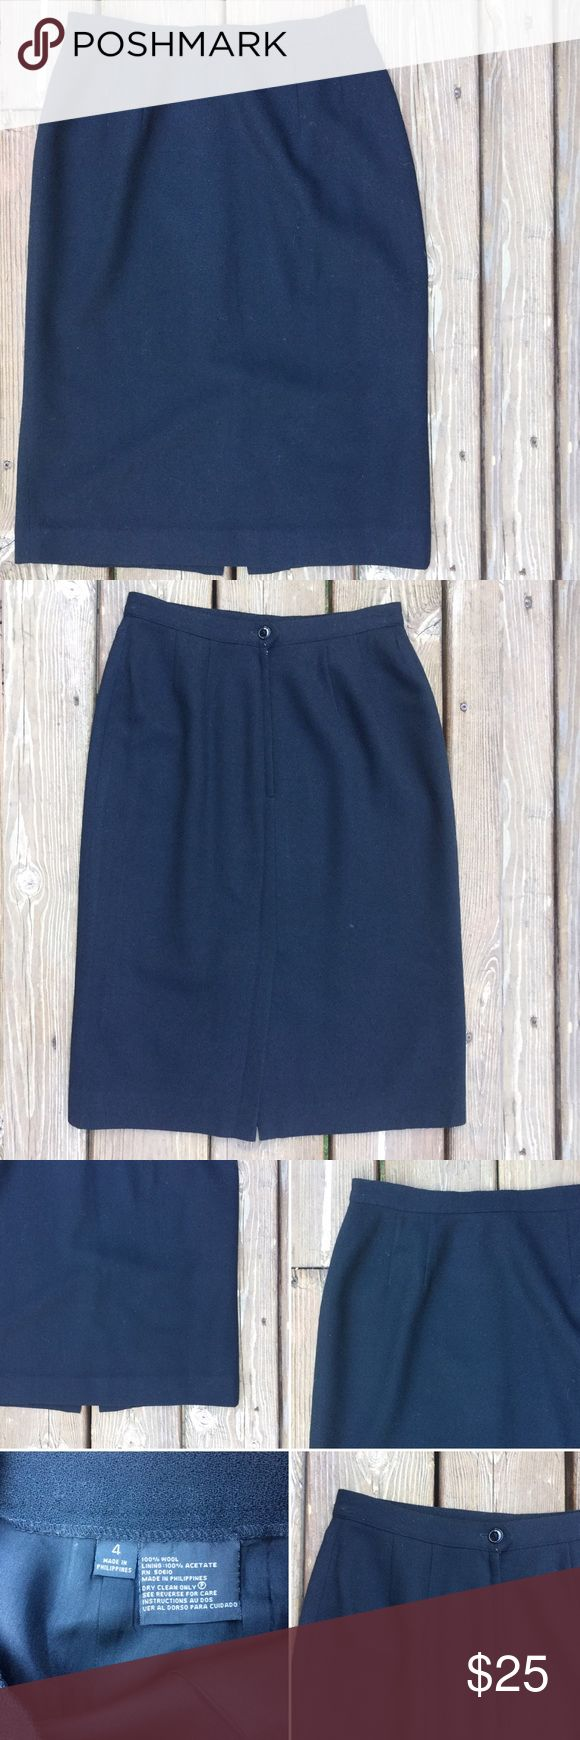 """Gorgeous Vintage Black Wool Pencil Skirt Sz 4 Gorgeous vintage 100% wool skirt! Darts at waist. Hidden back zip with button closure. Back vent. Fully lined.  Approximate measurements- Waist: 13"""" from side to side; Hip: 18.5"""" from side to side; Length: 24"""" measuring center front. (Modeled photo from aliexpress.com does not represent the exact color or the garment for sale, but demonstrates an idea for styling a black pencil skirt). 40.8.4 Skirts Pencil"""